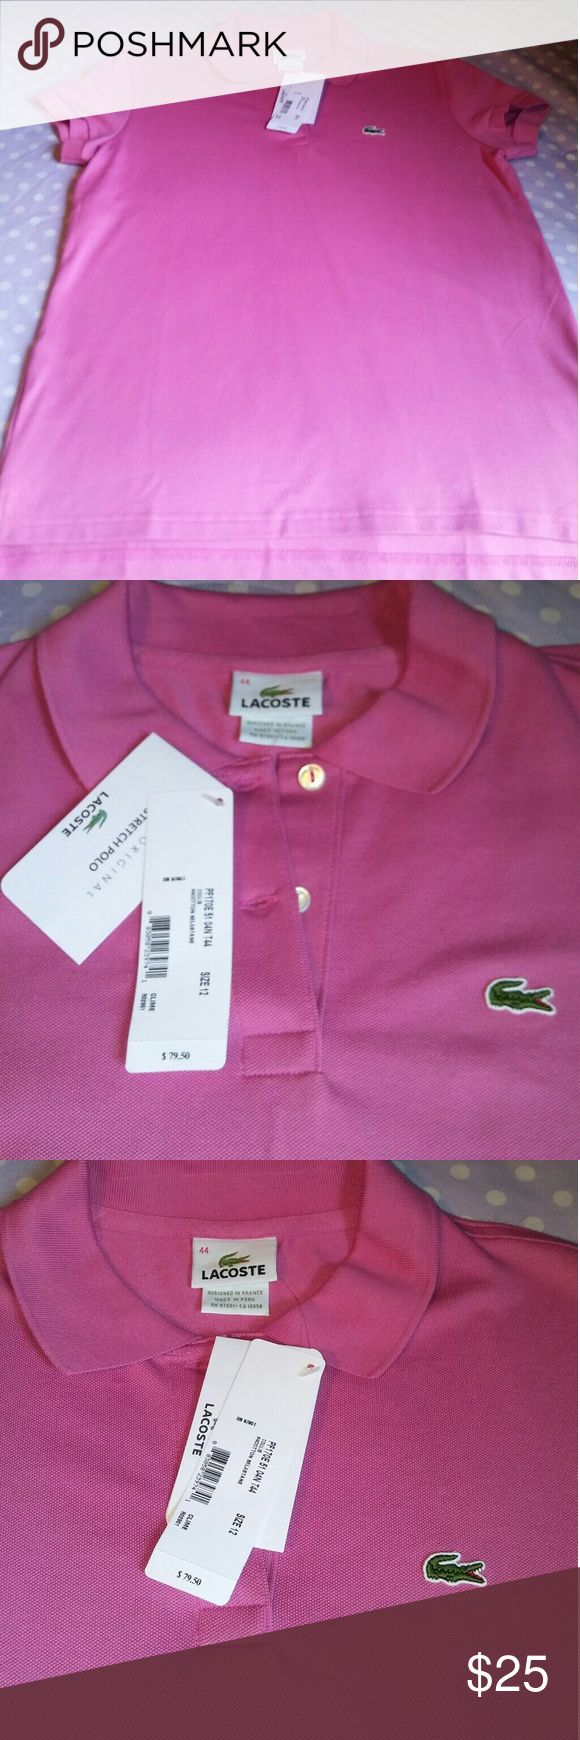 Ladies Polo Shirt Brand new Lacoste polo shirt, it is in excellent condition. Lacoste Tops Button Down Shirts